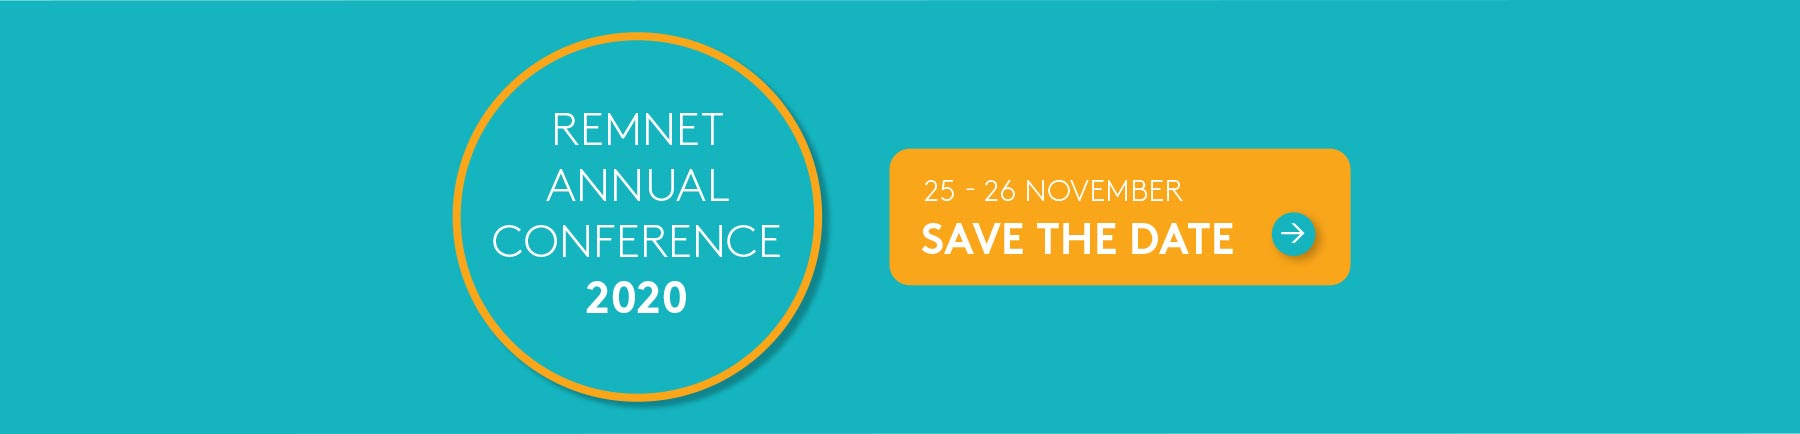 RemNet Annual Conference 2020